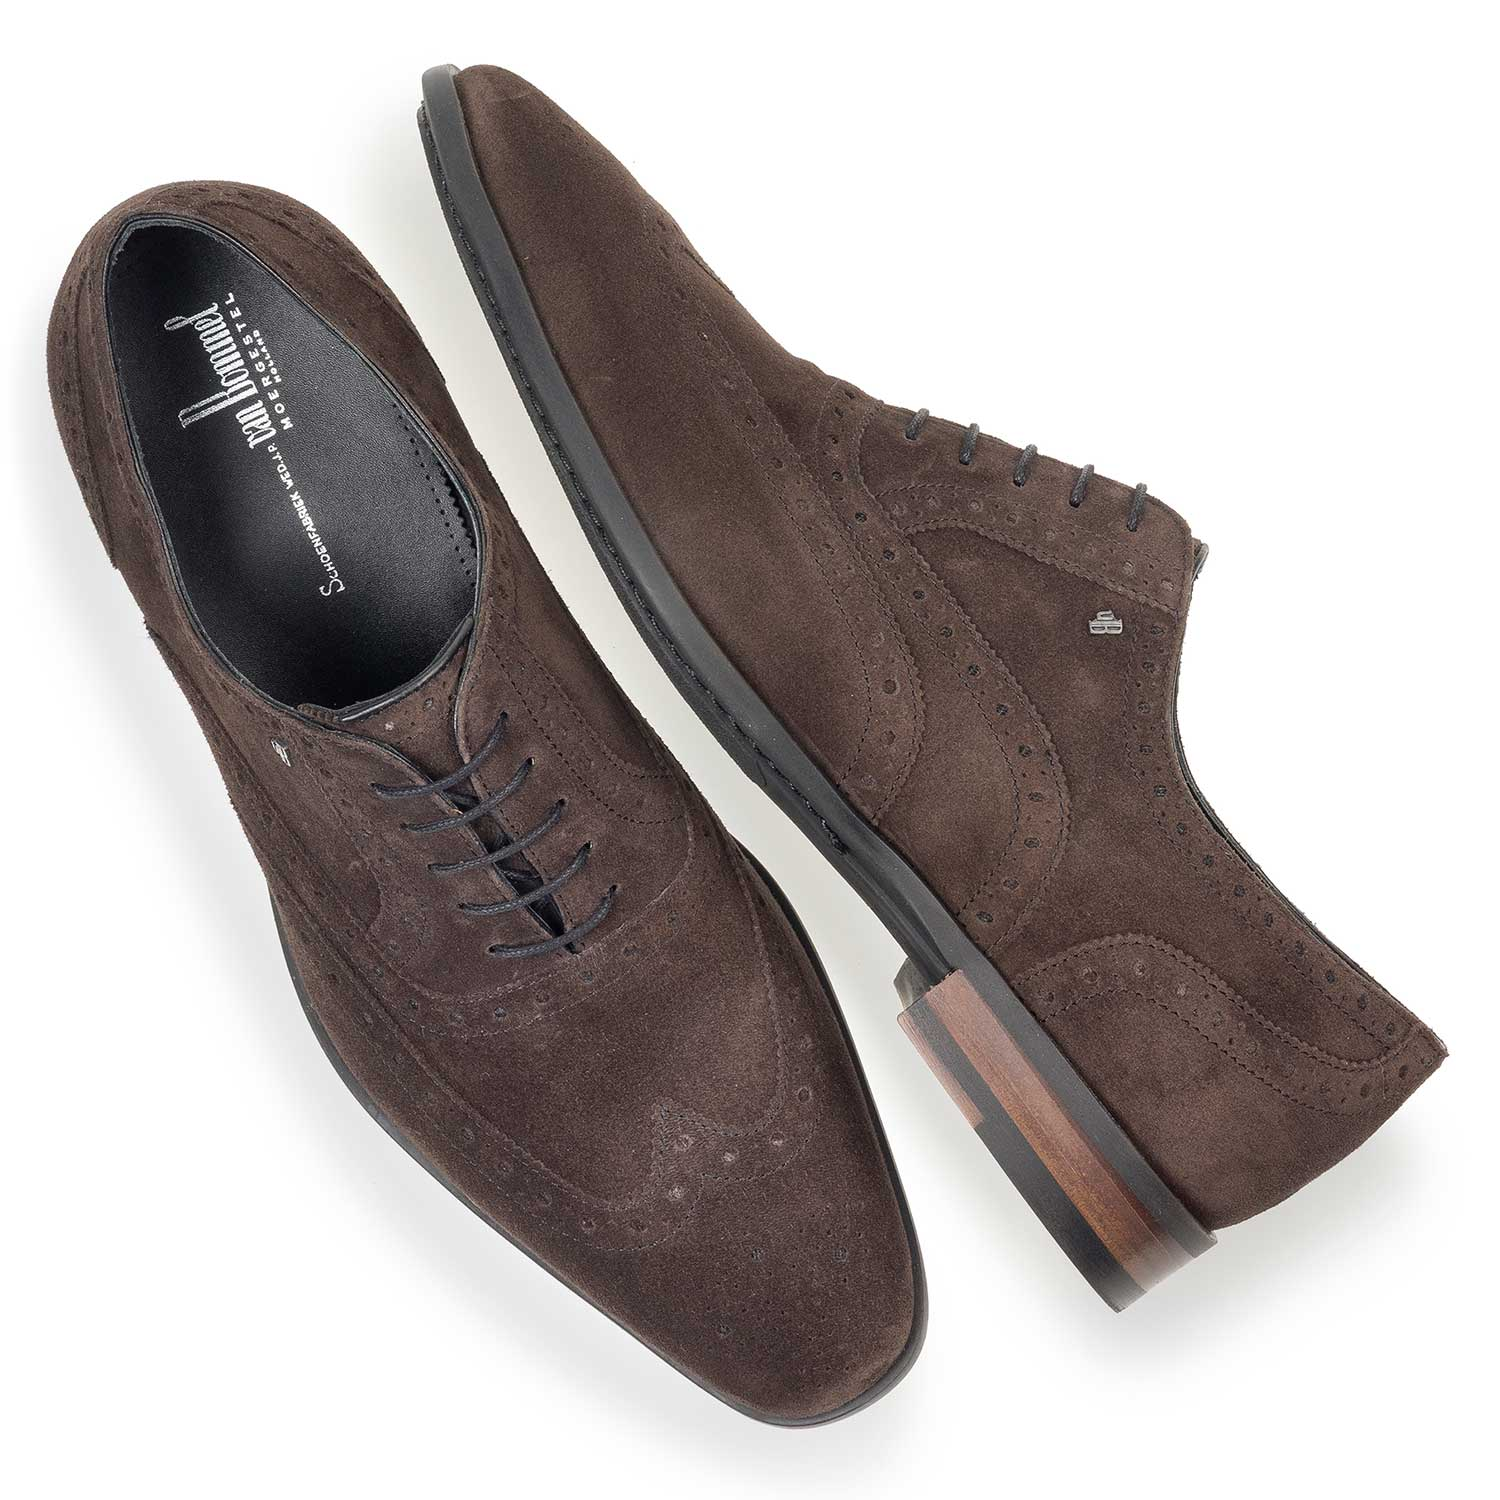 19105/01 - Brown calf suede leather brogue